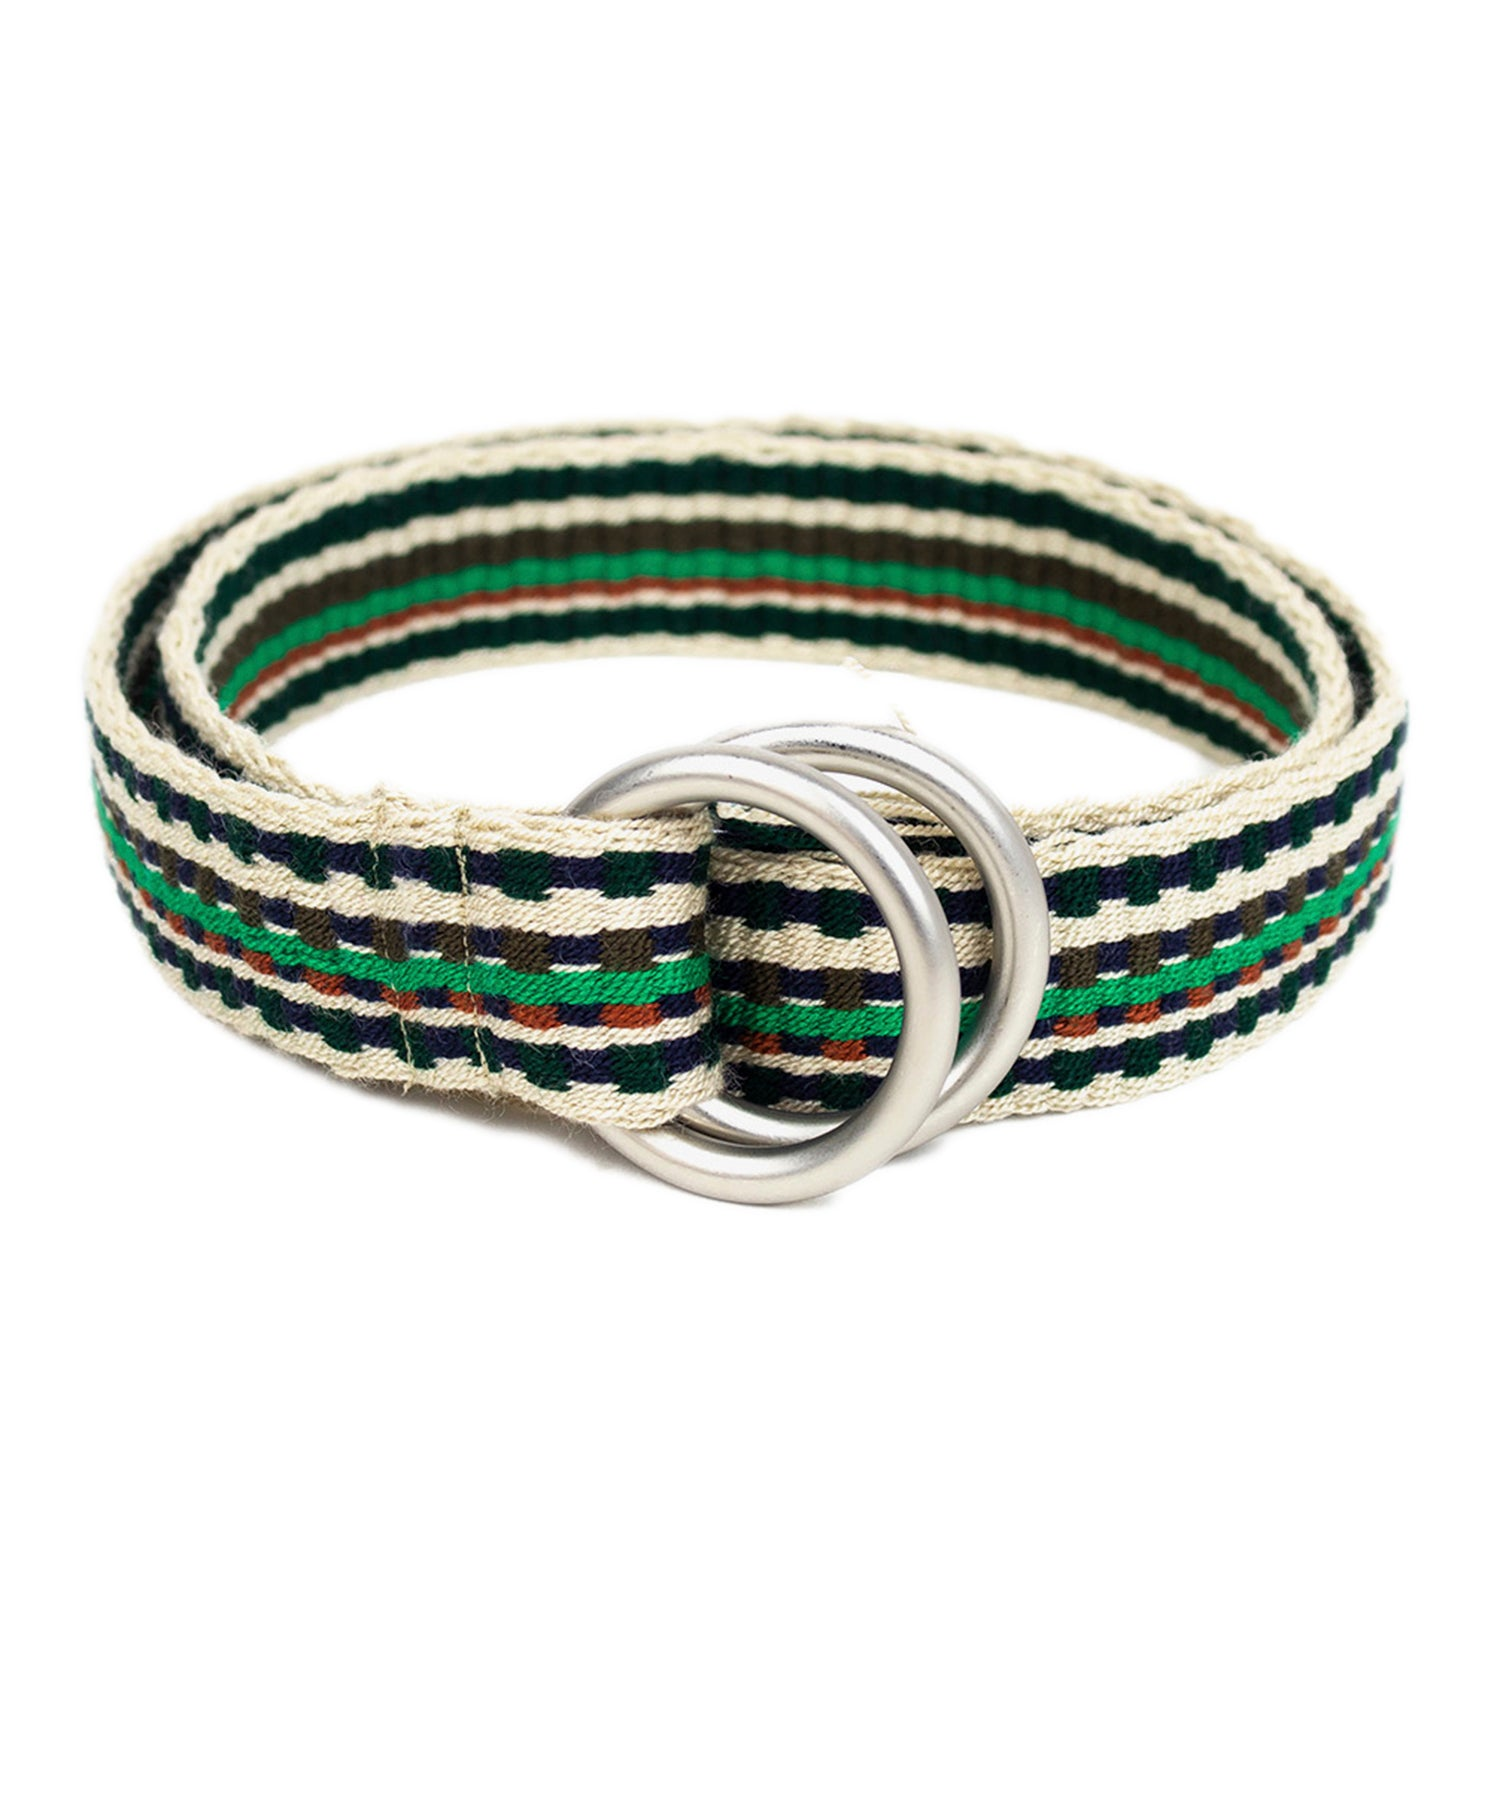 Guanábana Handmade Belt With Fringe + Round Buckle in Green